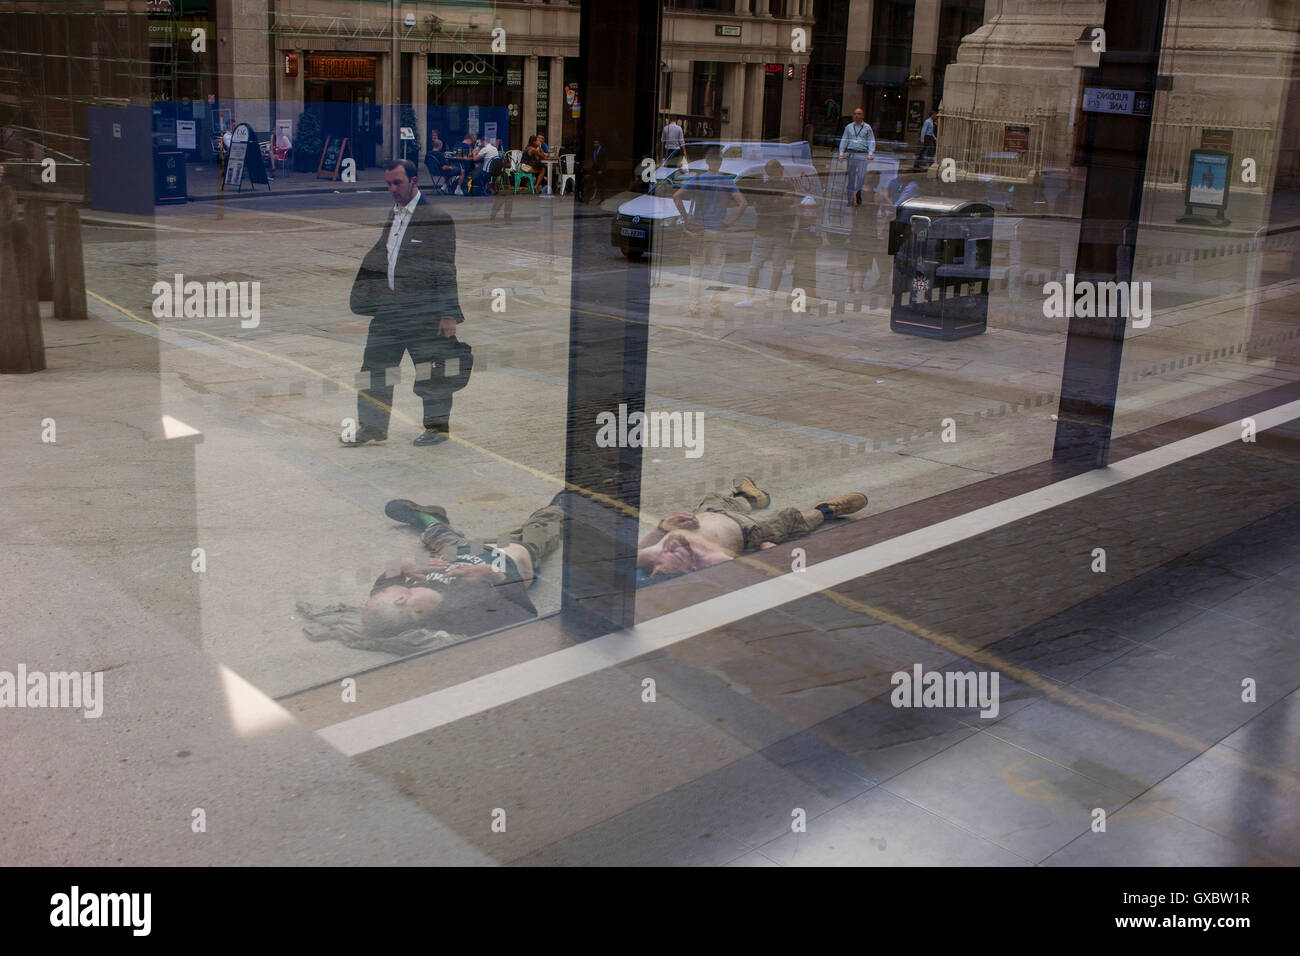 Two men sleep on the ground near Pudding lane, the location of the Great Fire of London (1666), on 13th September Stock Photo